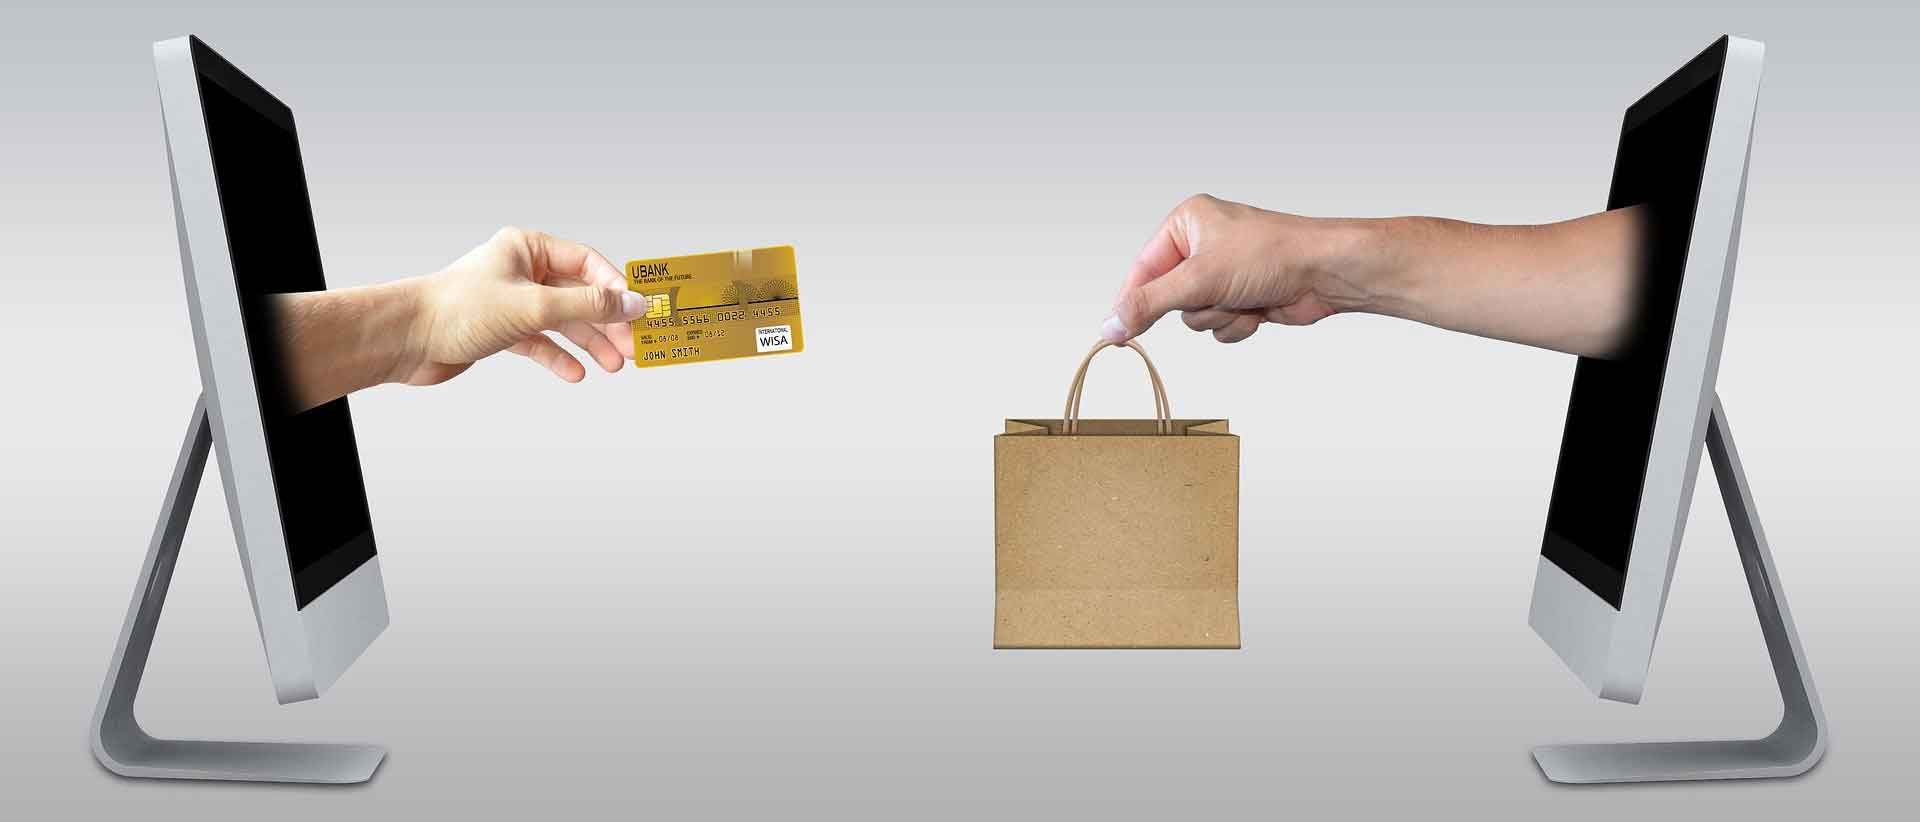 increase paying customer or conversion rate with these tips